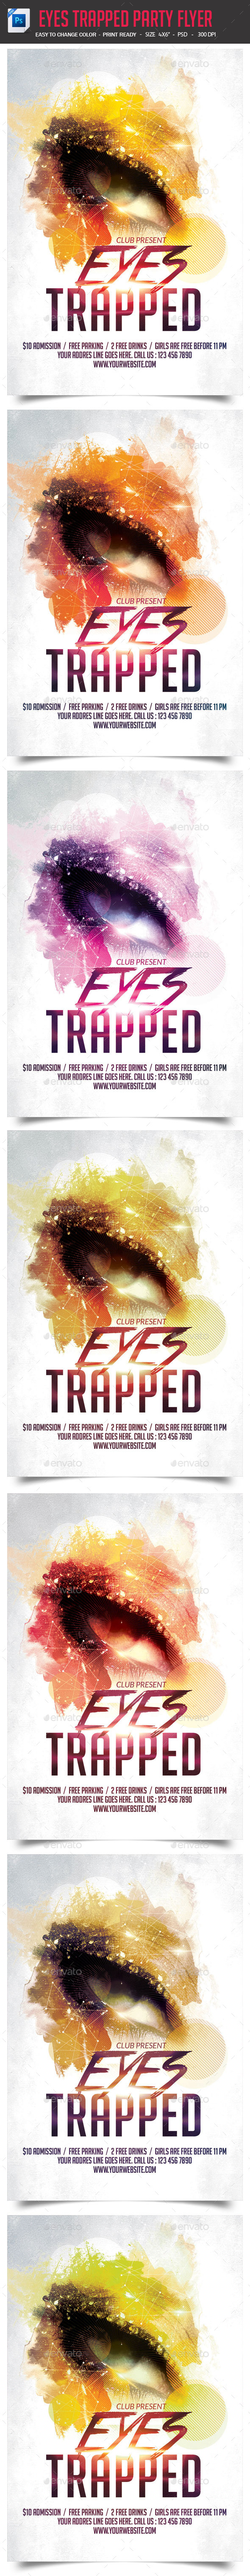 Eyes Trapped Party Night Flyer - Clubs & Parties Events